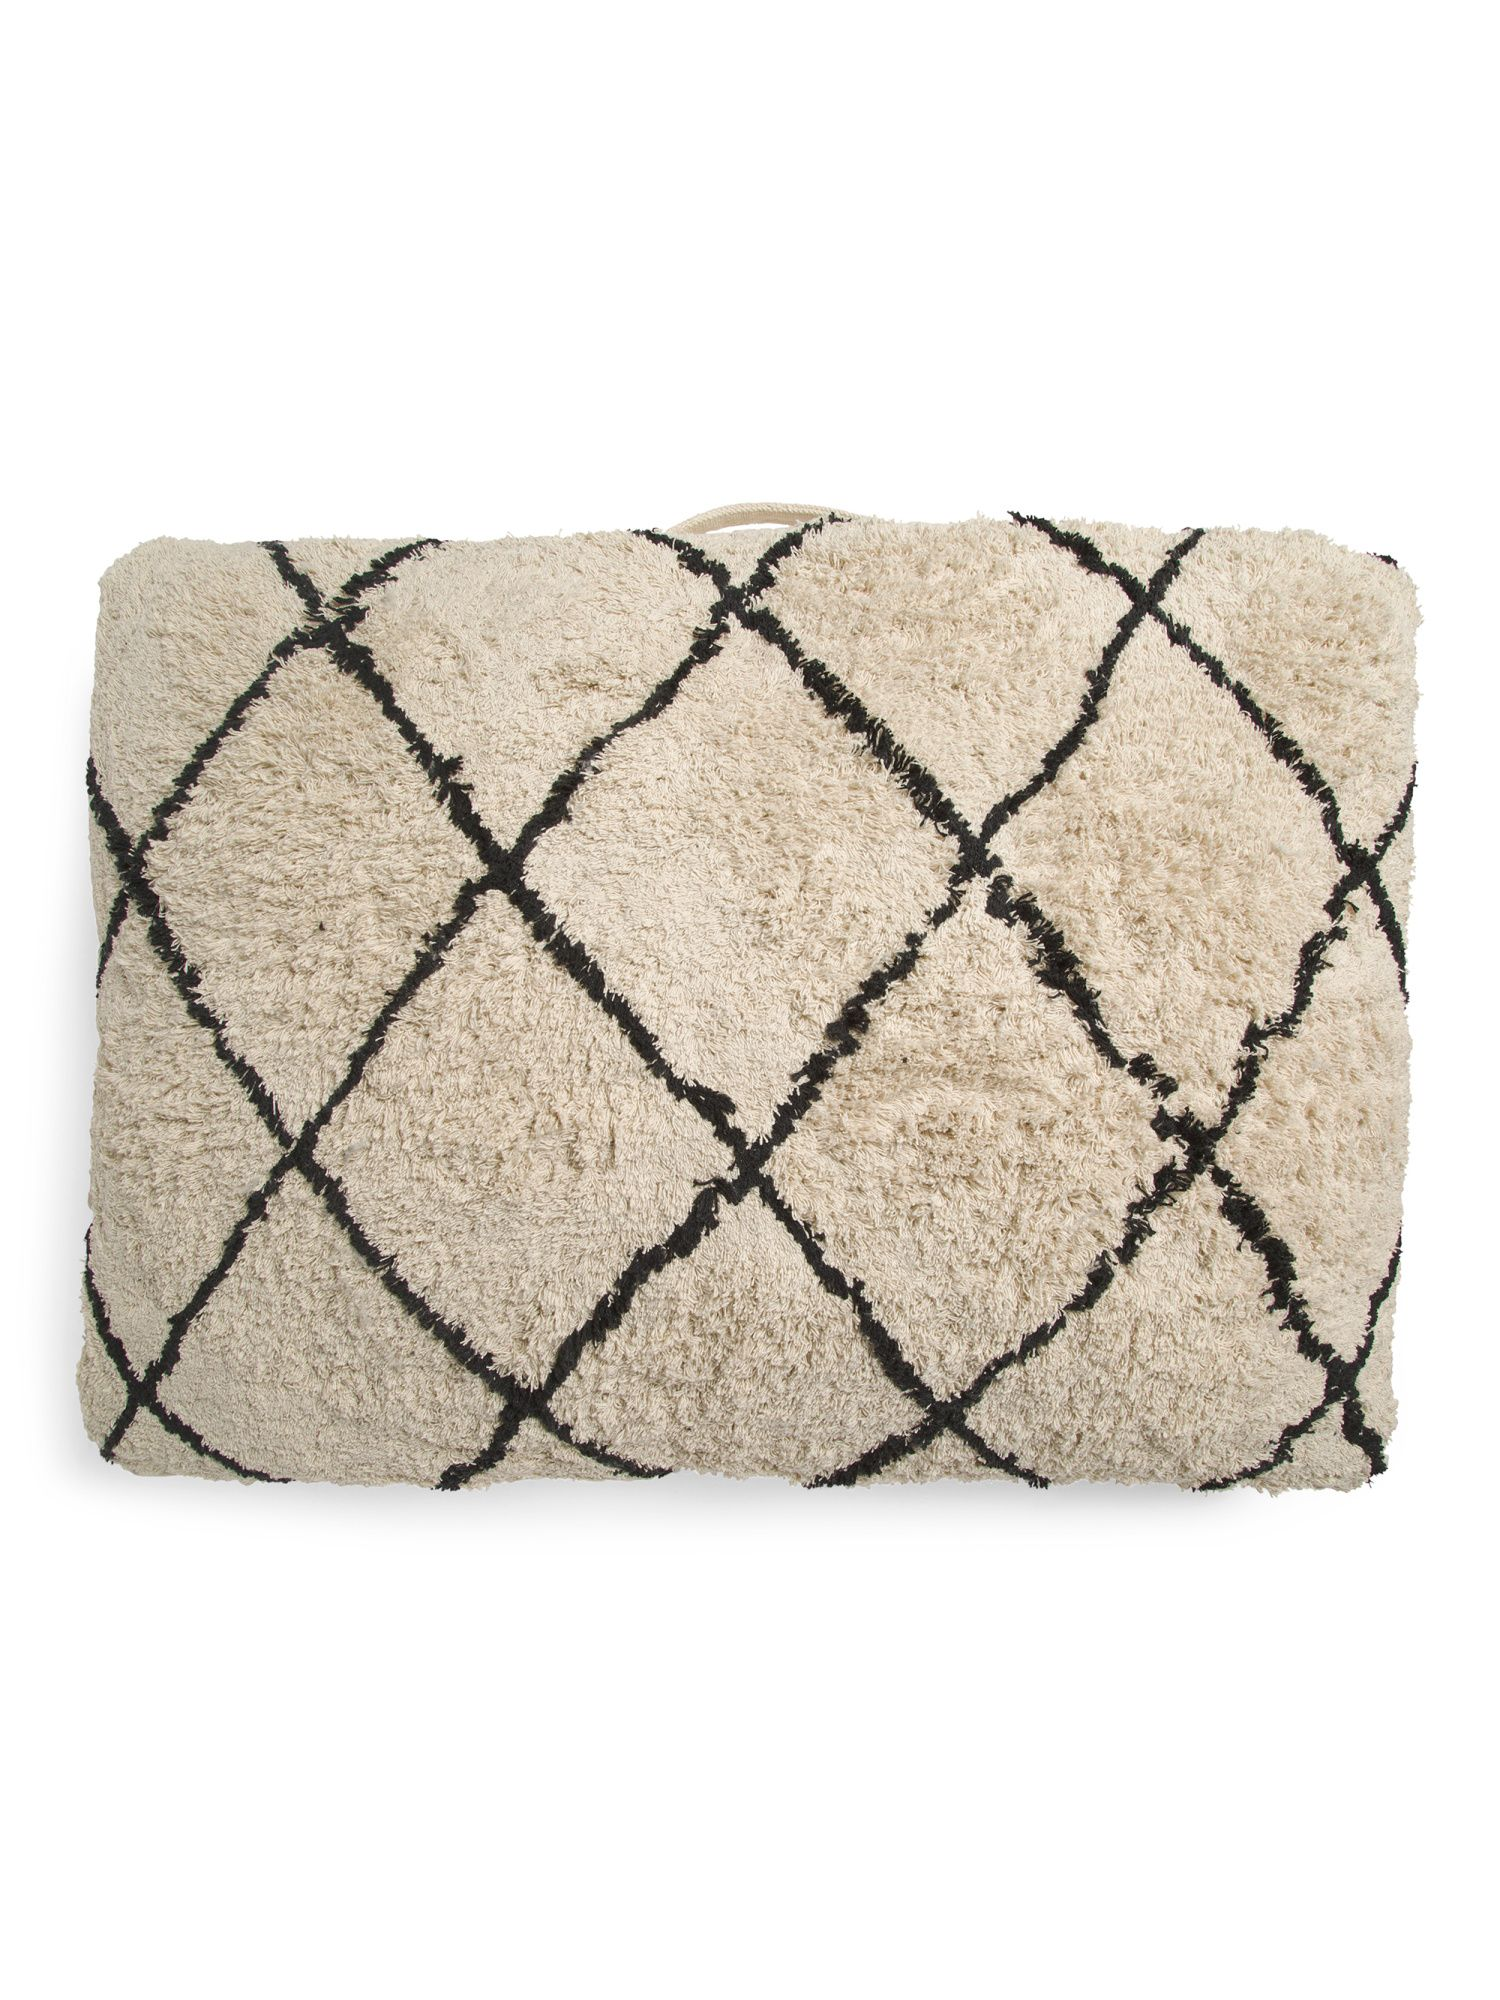 Made In India Tufted Diamond Pet Bed Dog storage